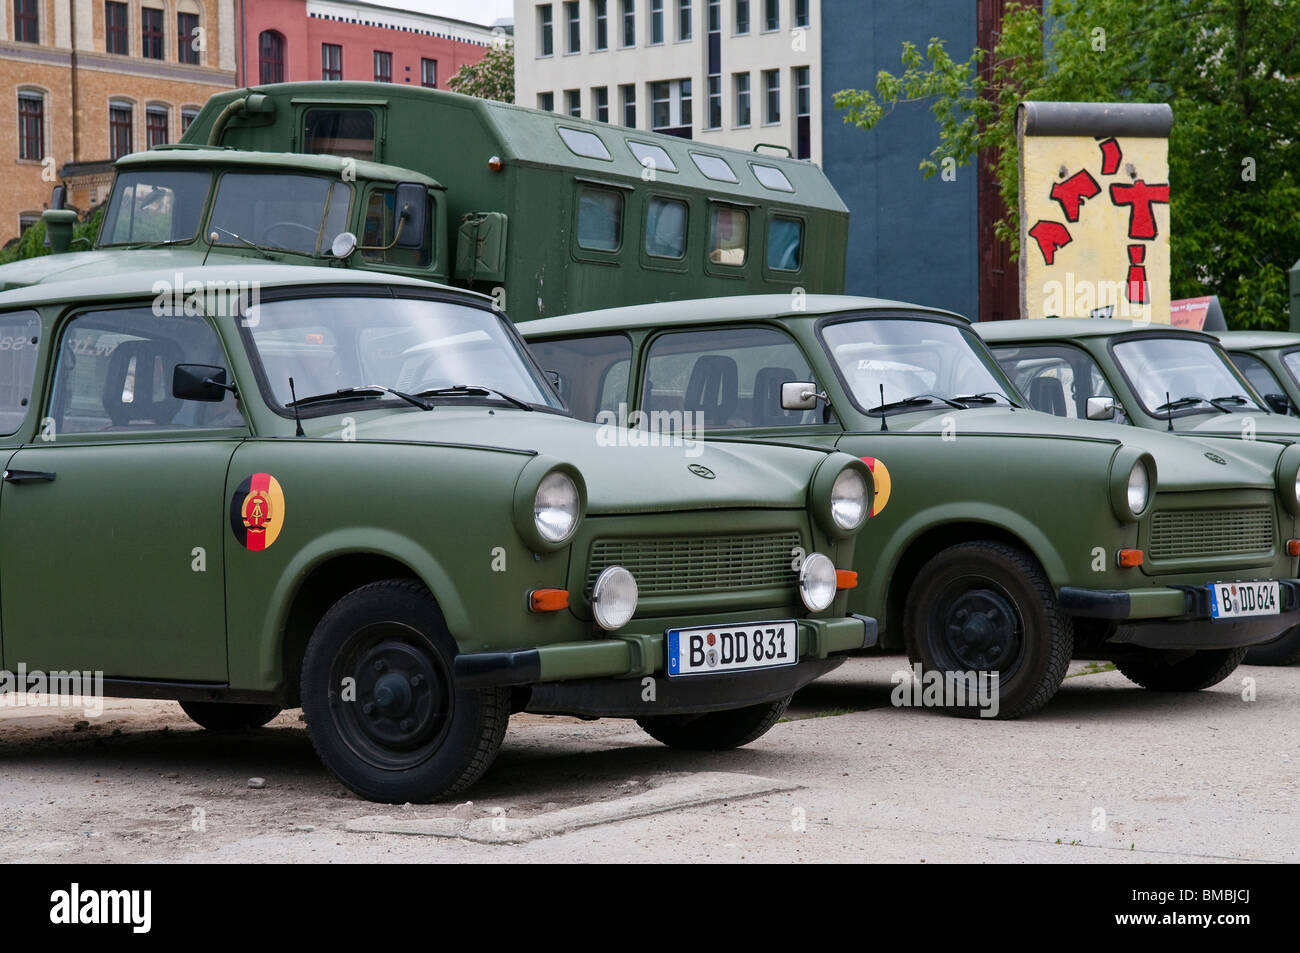 Old GDR Army vehicles of the brand Trabant, Berlin, Germany - Stock Image